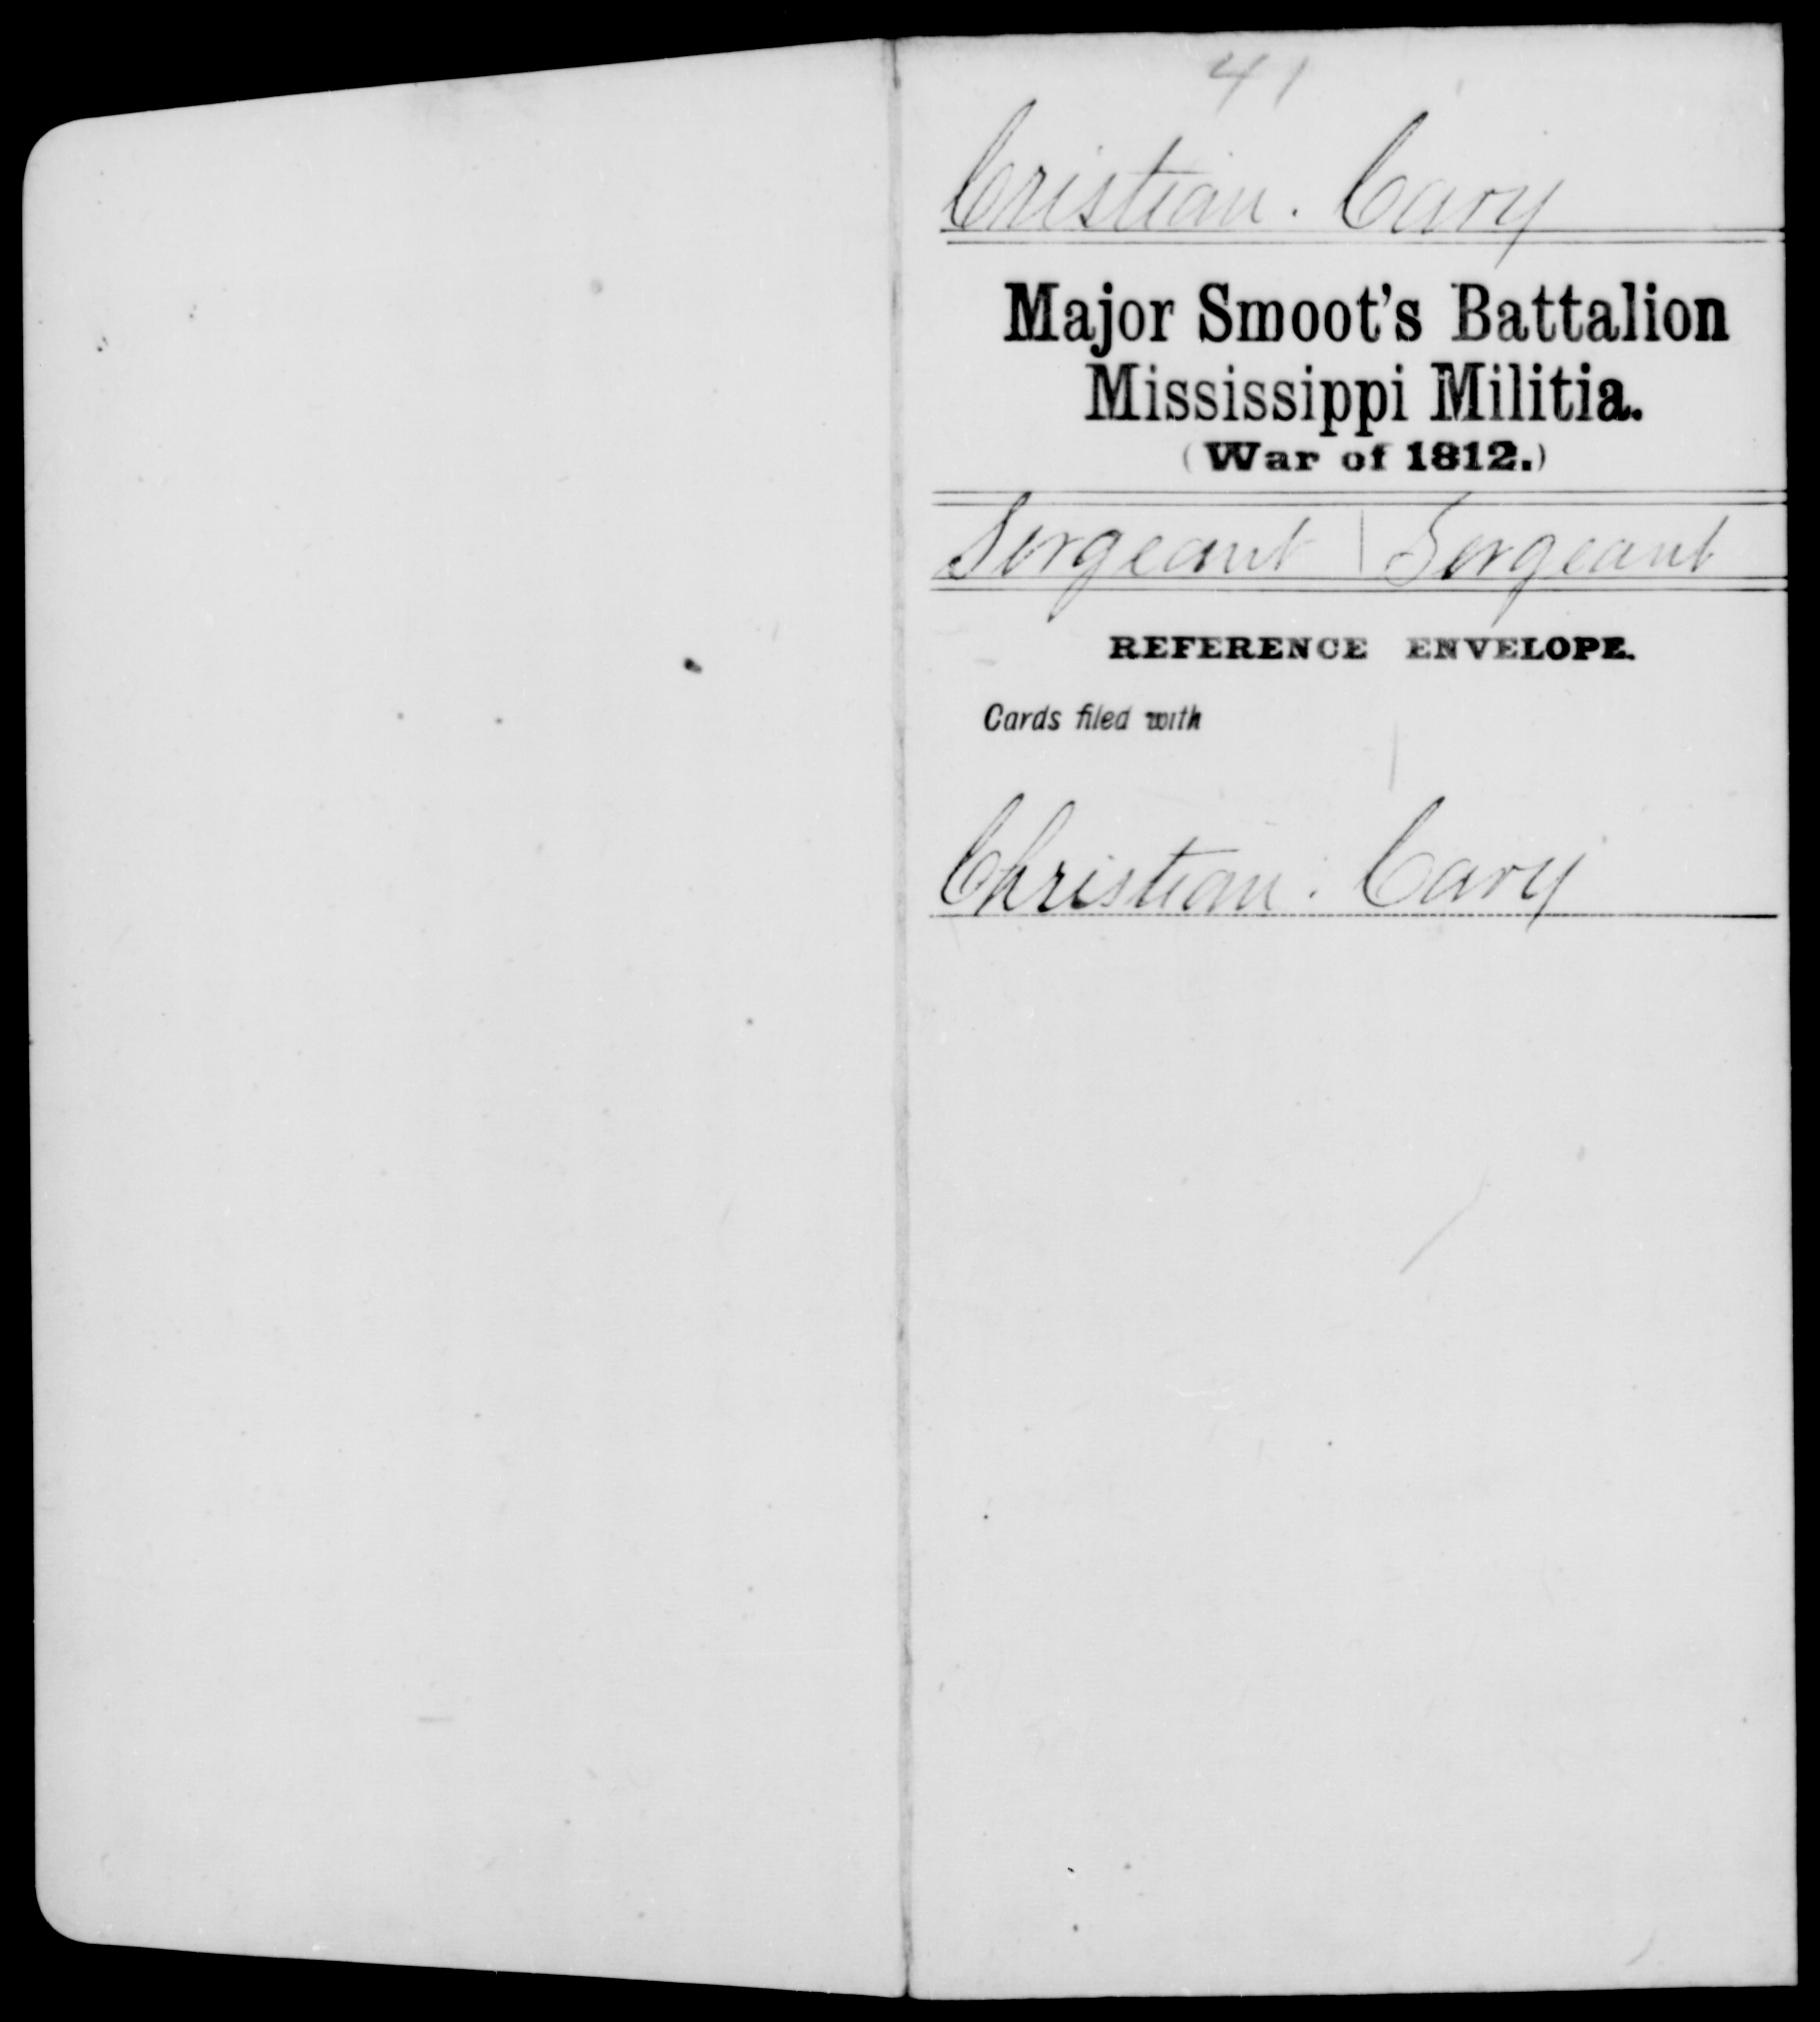 Compiled Military Service Record of Cary Cristian, Smoot's Battalion, Mississippi Militia, [BLANK]